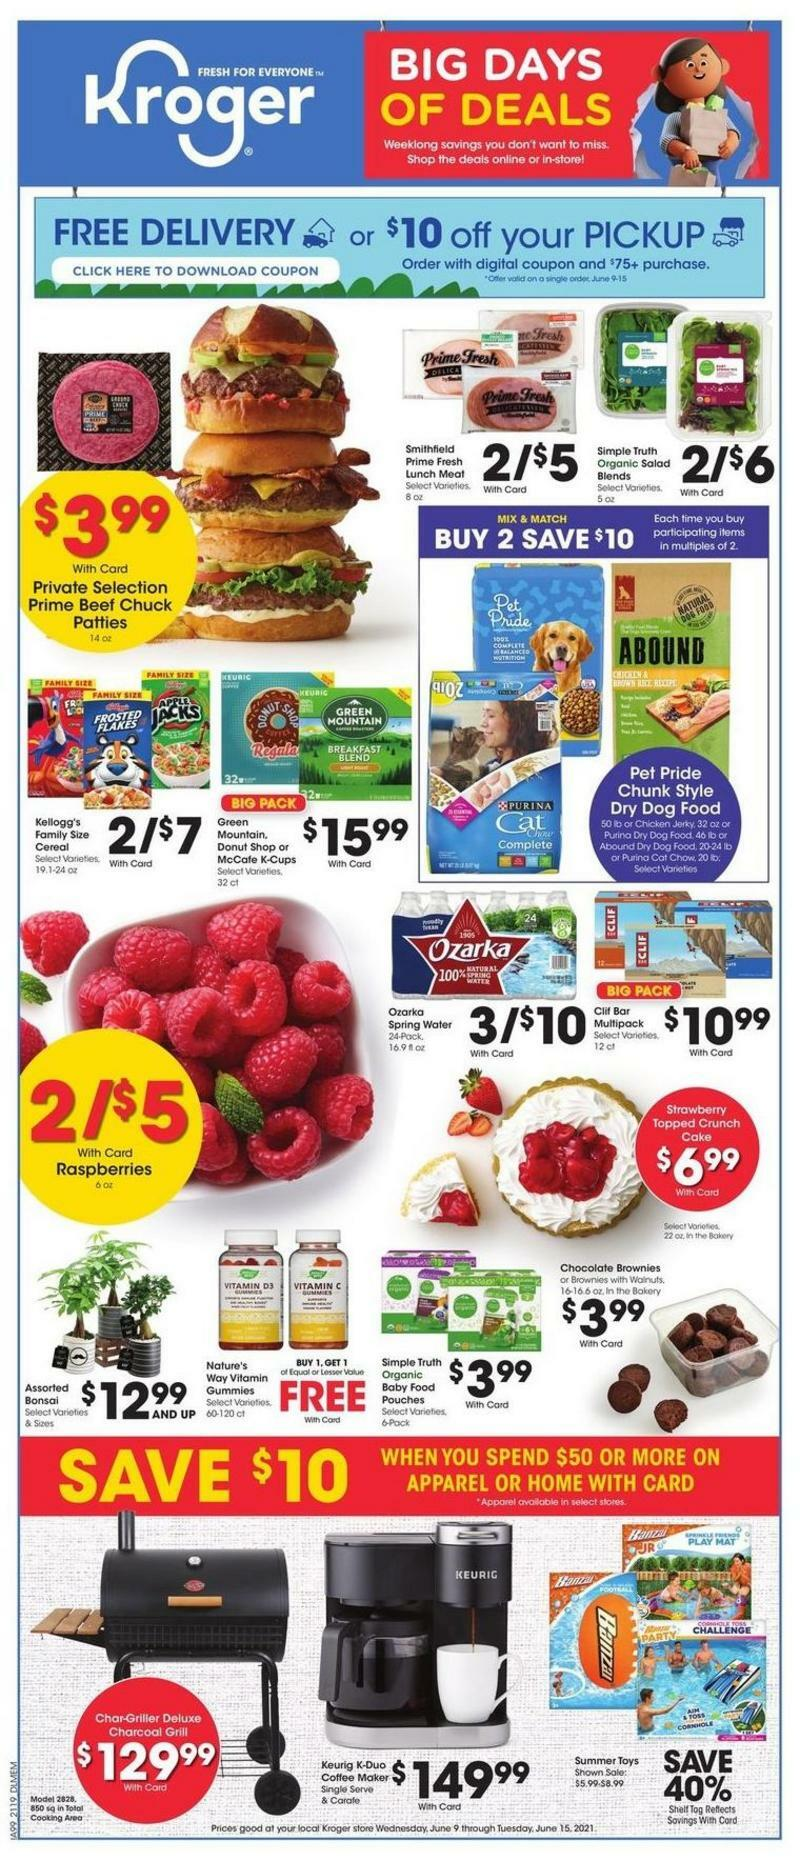 Kroger Big Days of Deals Weekly Ad from June 9